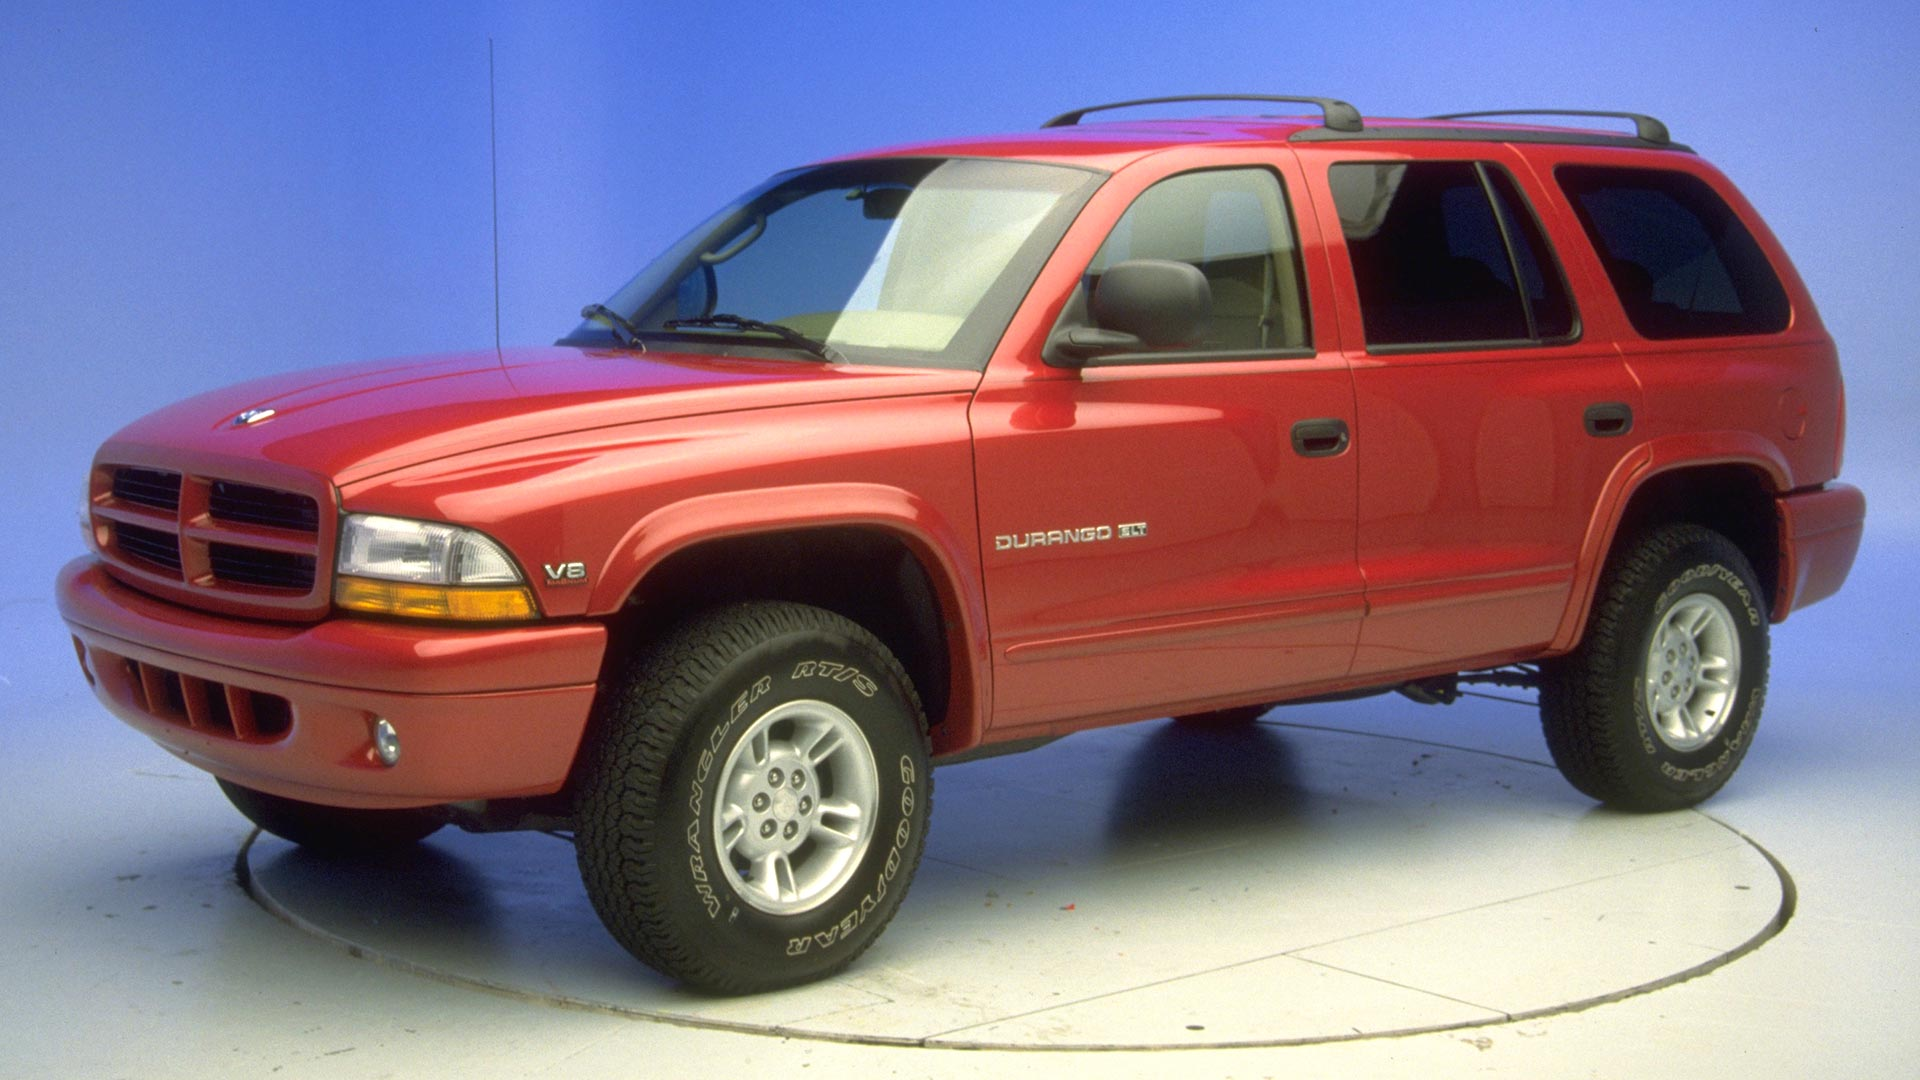 2001 Dodge Durango 4-door SUV